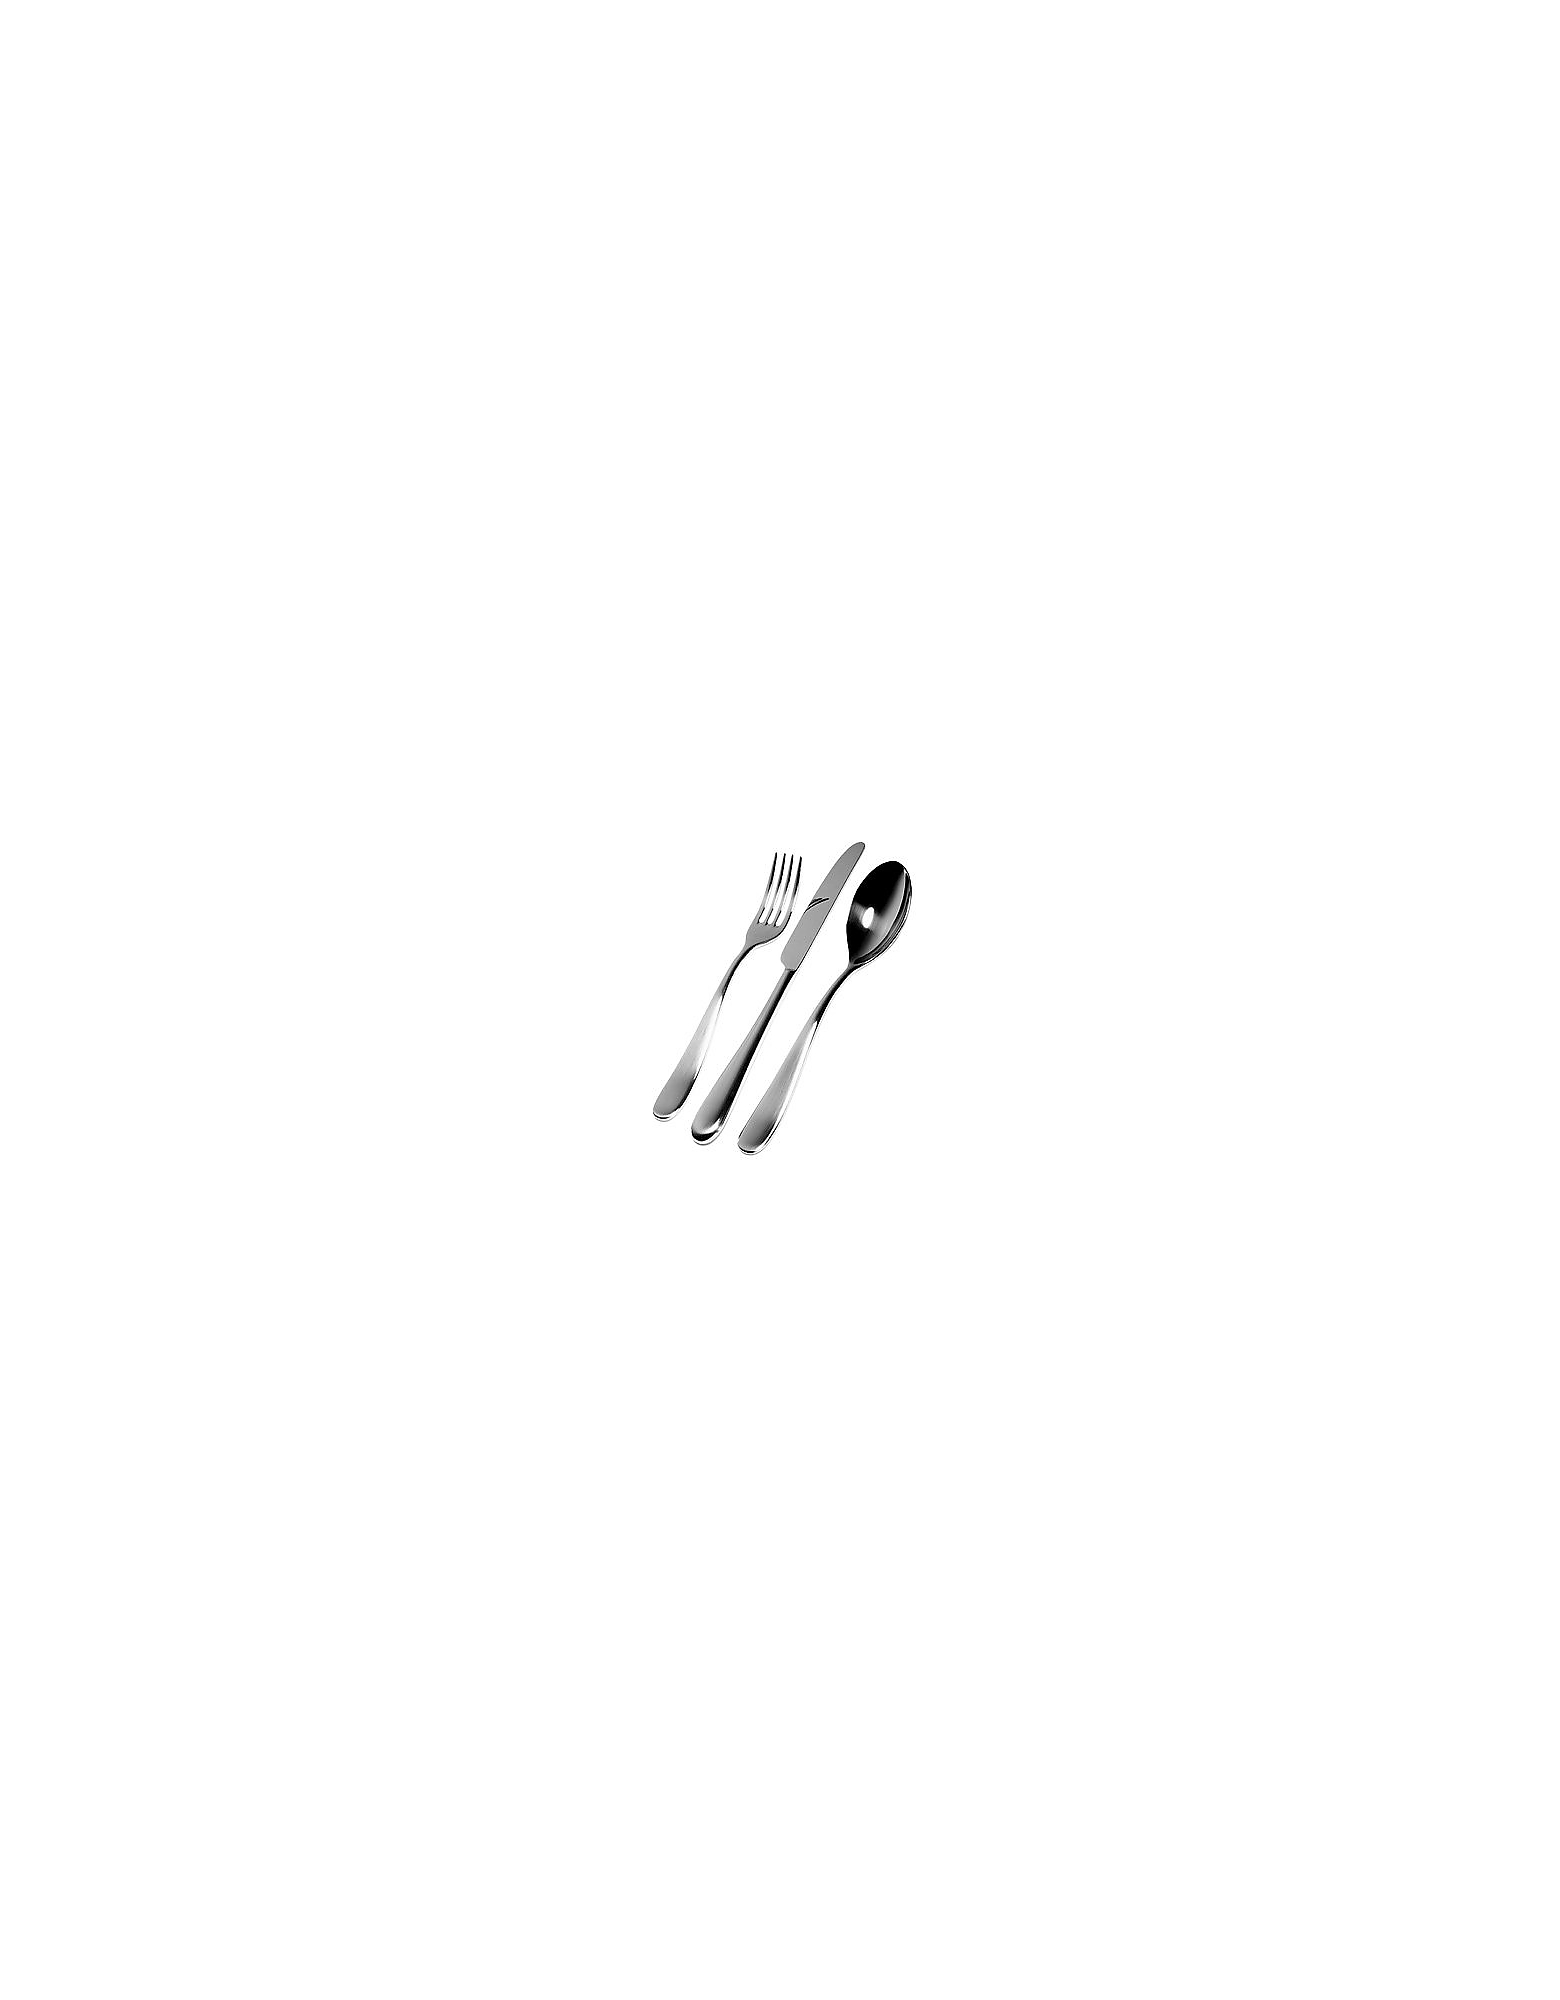 Alessi Kitchen & Dining, Nuovo Milano - Cutlery Set for 1 person (6 pc.)